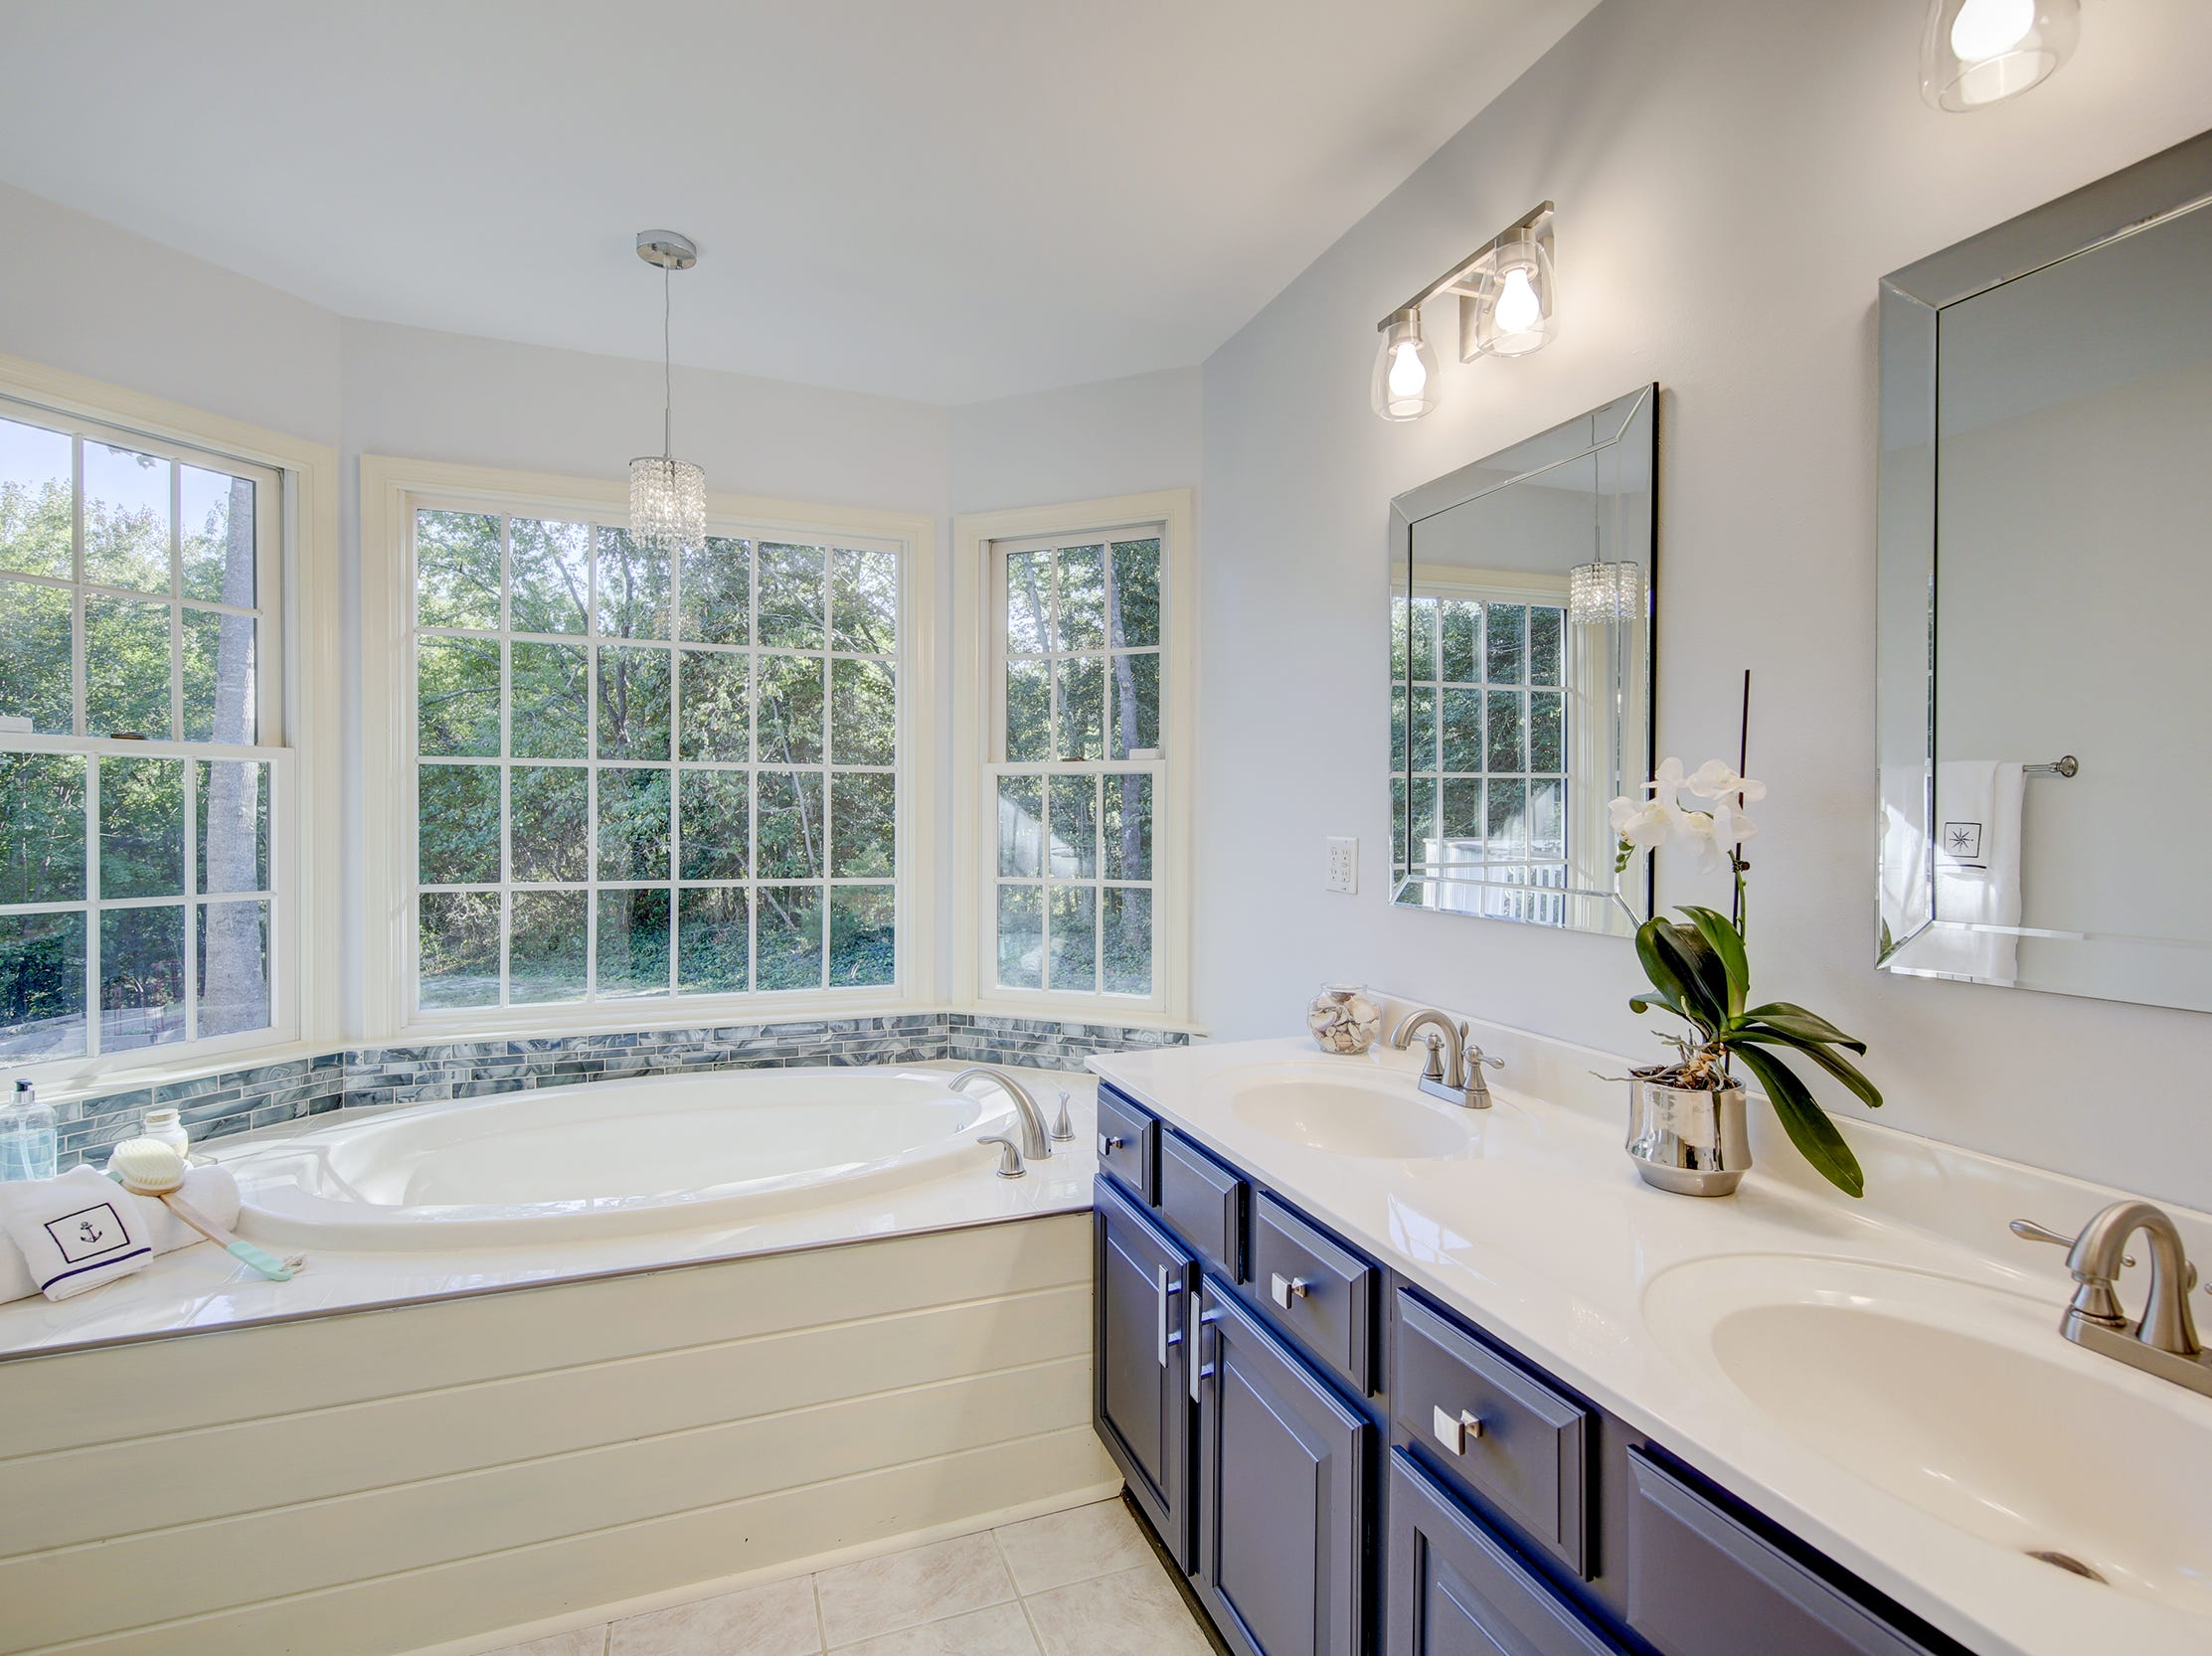 The master bath at 204 Lakeview Shores in Rehoboth Beach features dual vanities and a whirlpool tub.